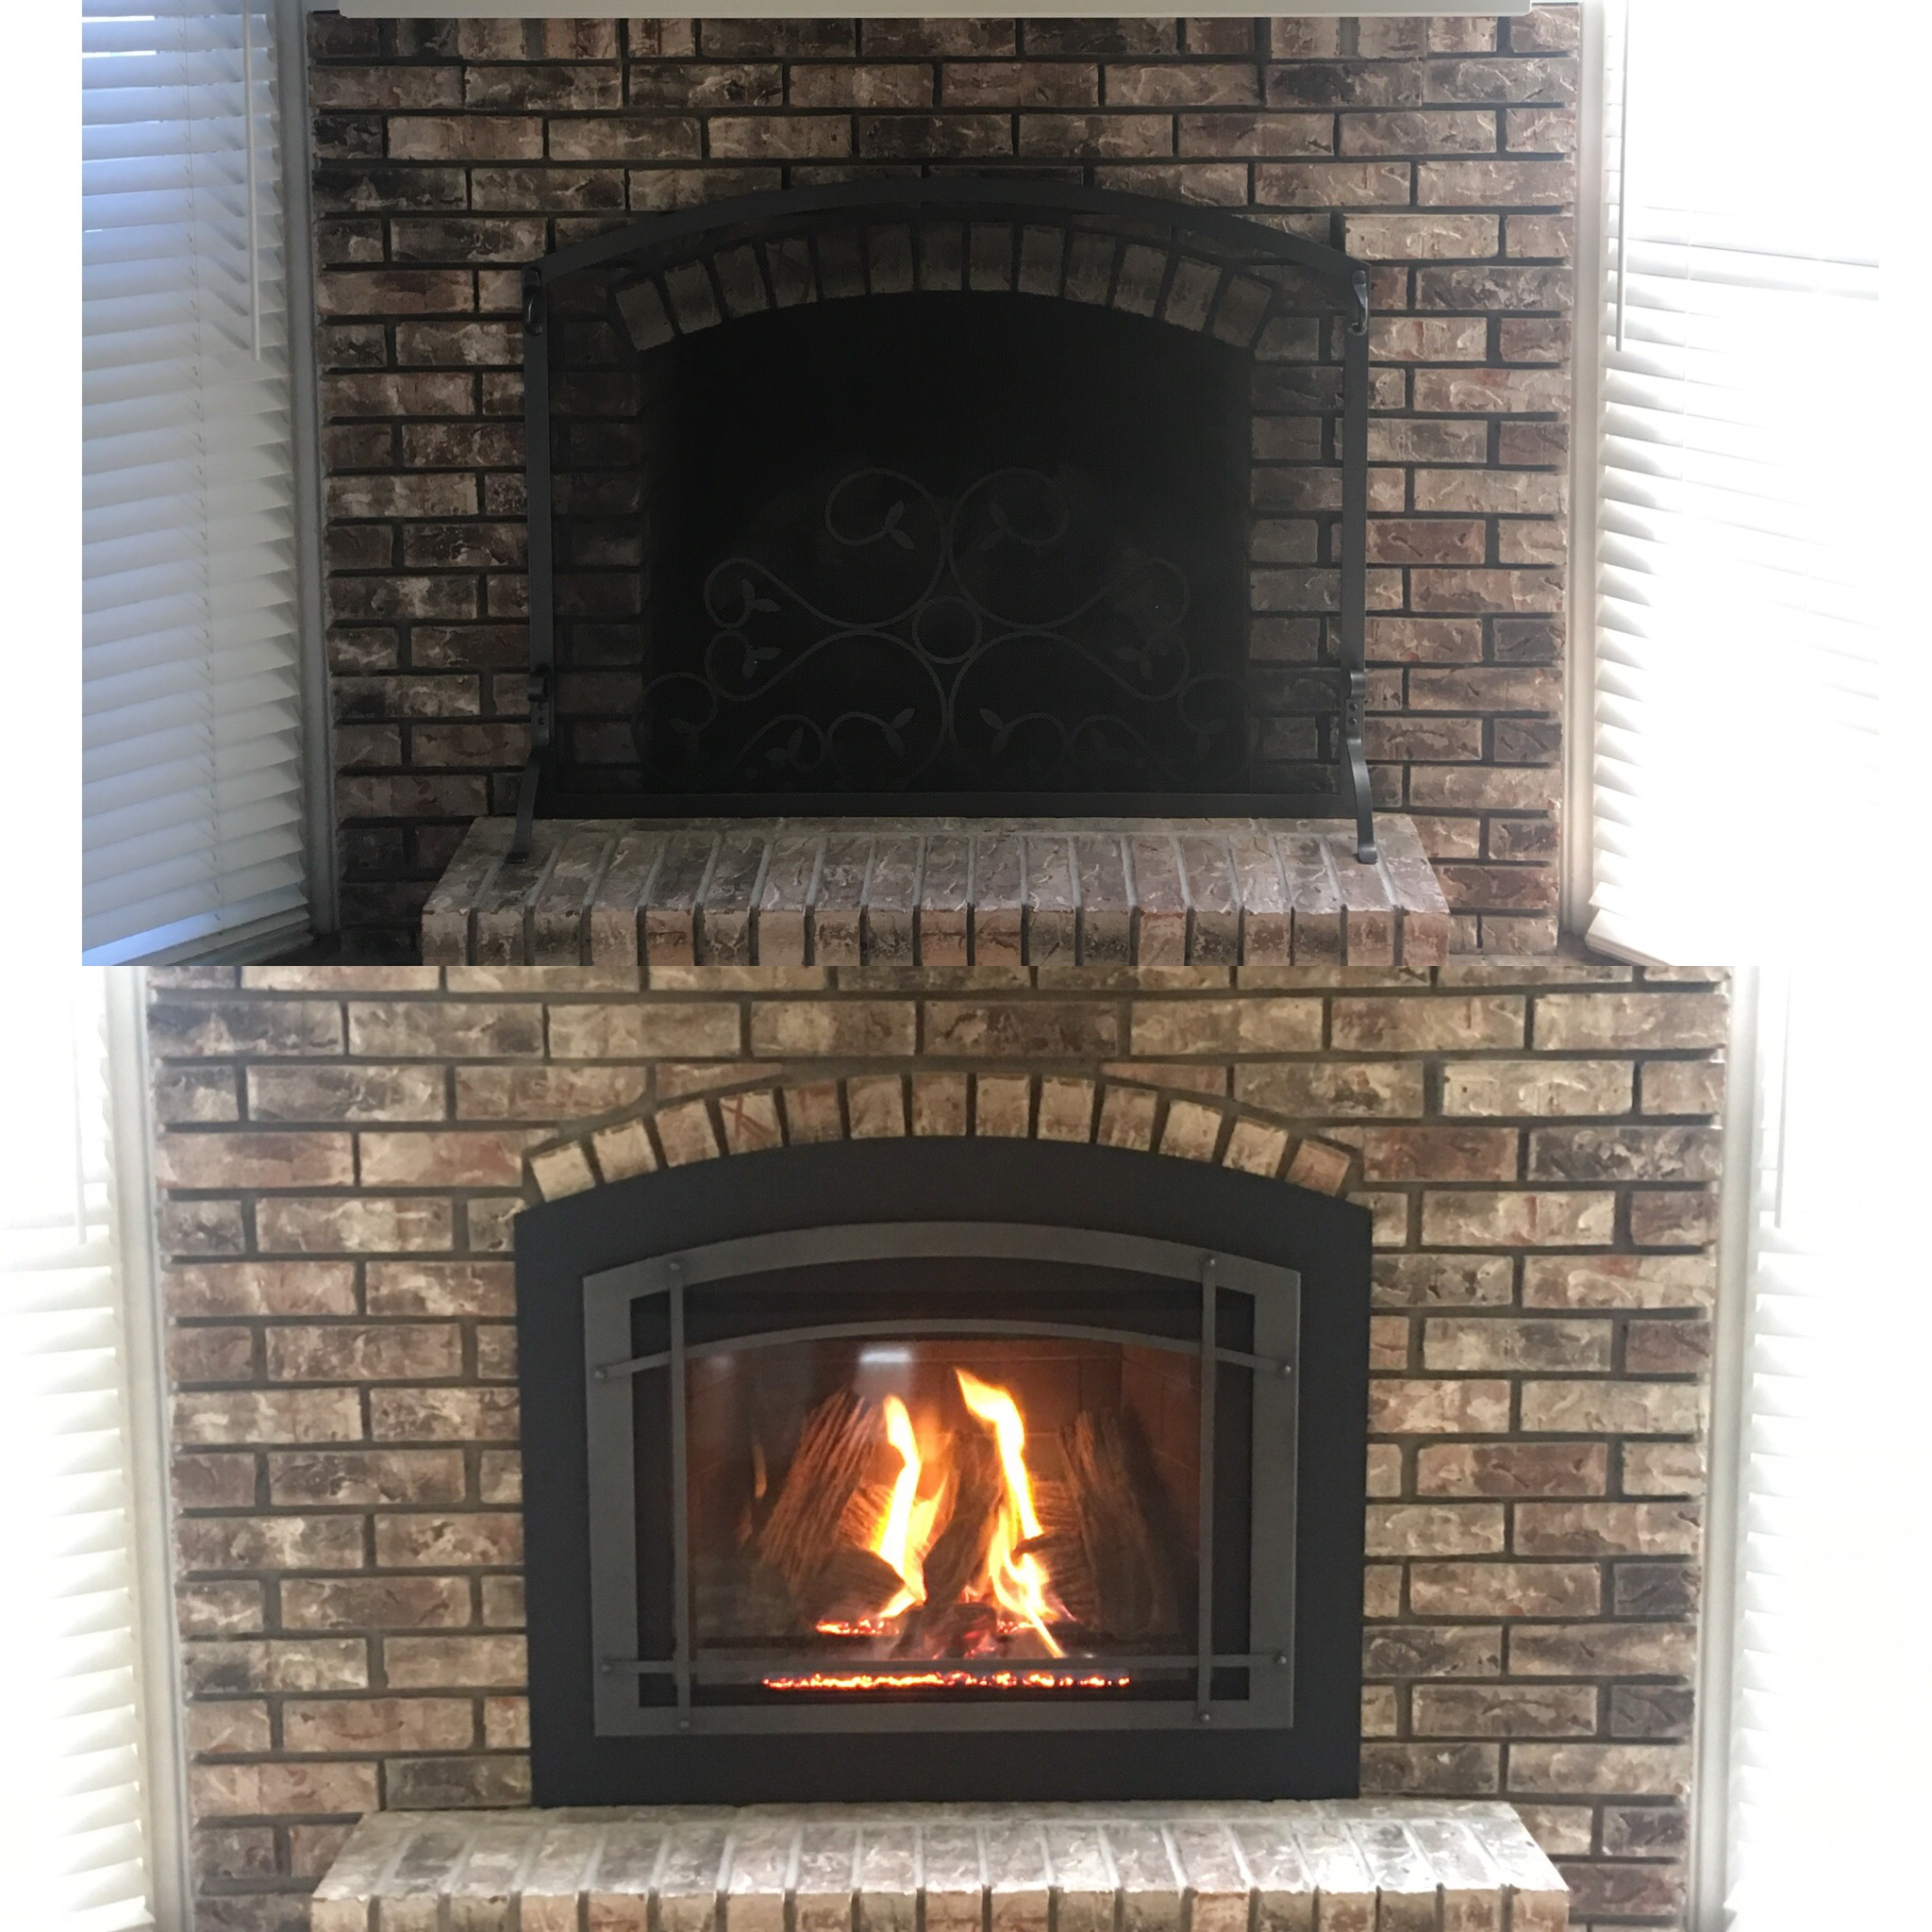 Image of a traditional Jordan 30 gas insert by Kozy Heat and the preexisting masonry fireplace as the before.